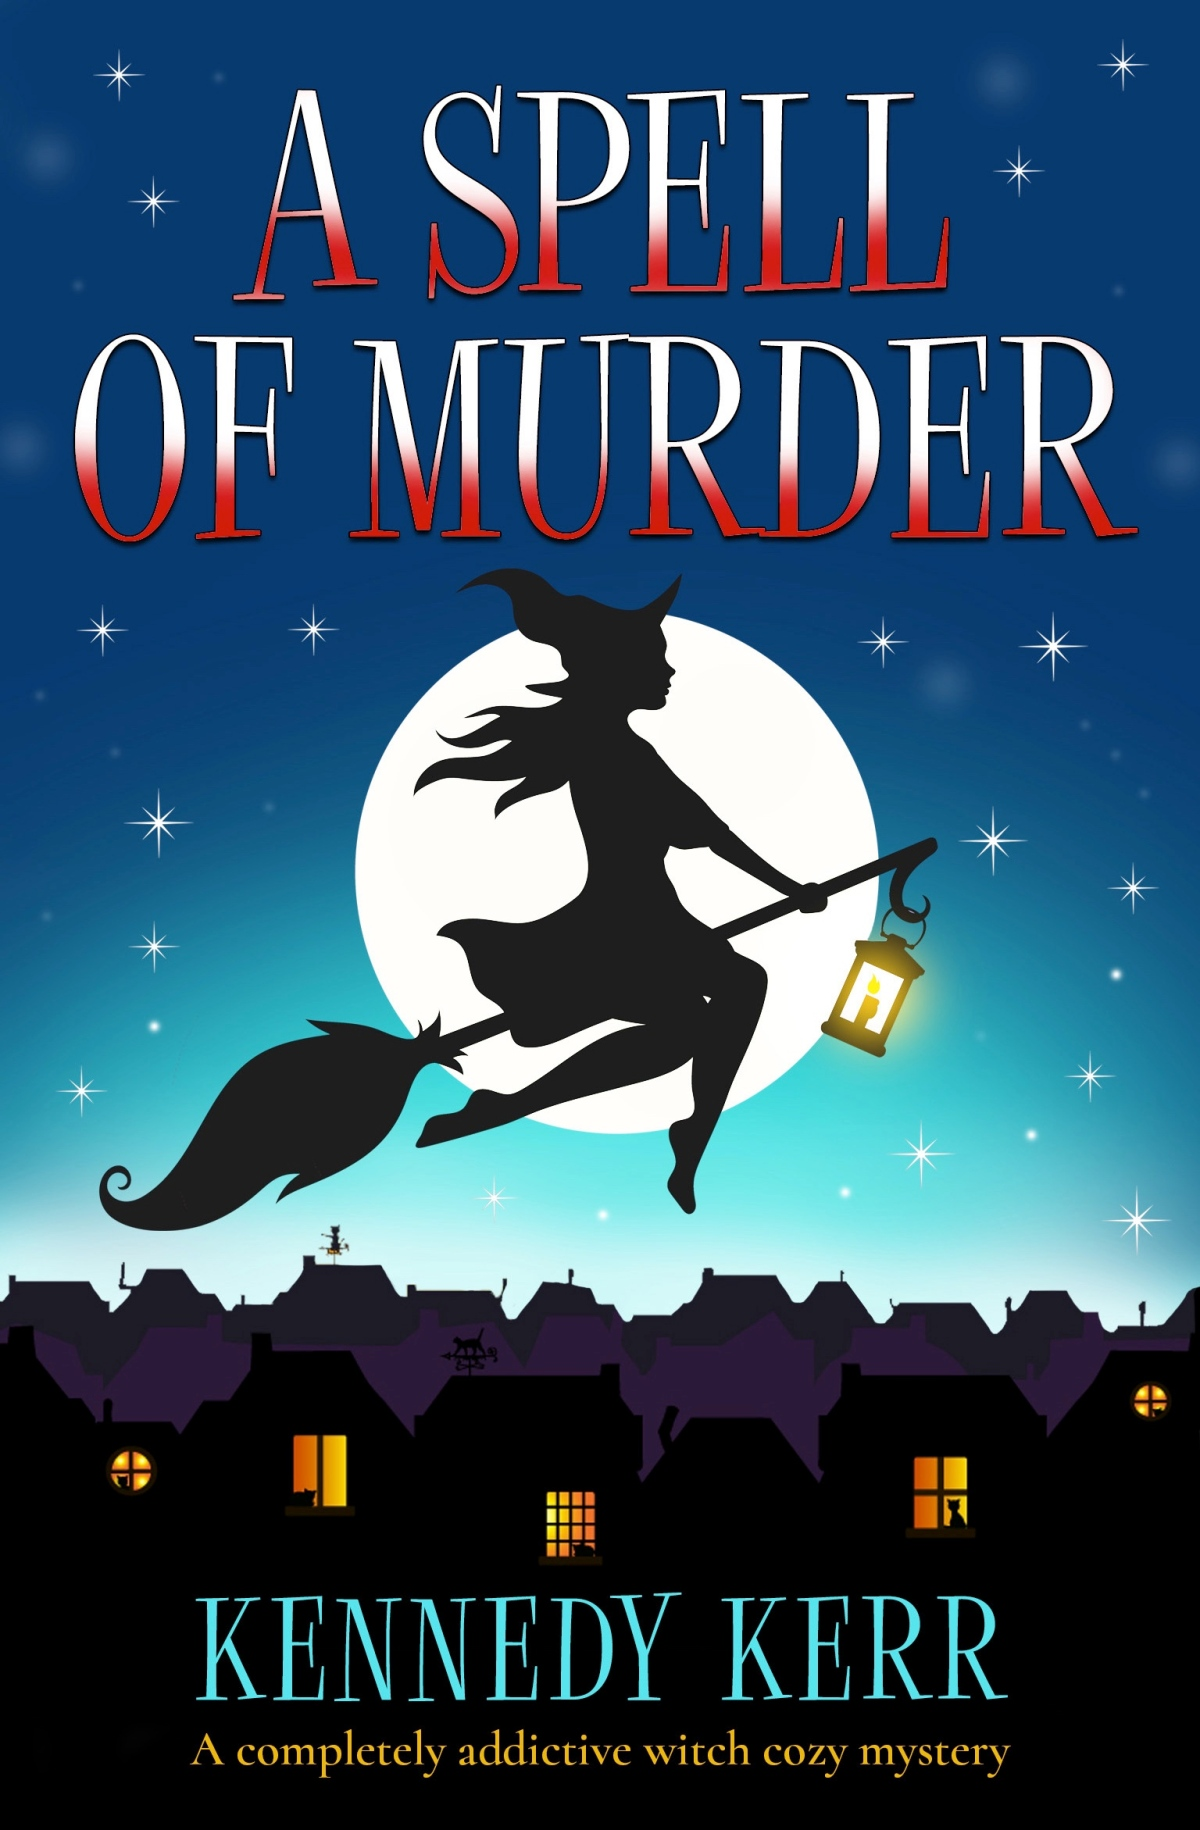 #Review A Spell Of Murder by Kennedy Kerr @KennedyKerr5 @bookouture #Booksontour #newrelease